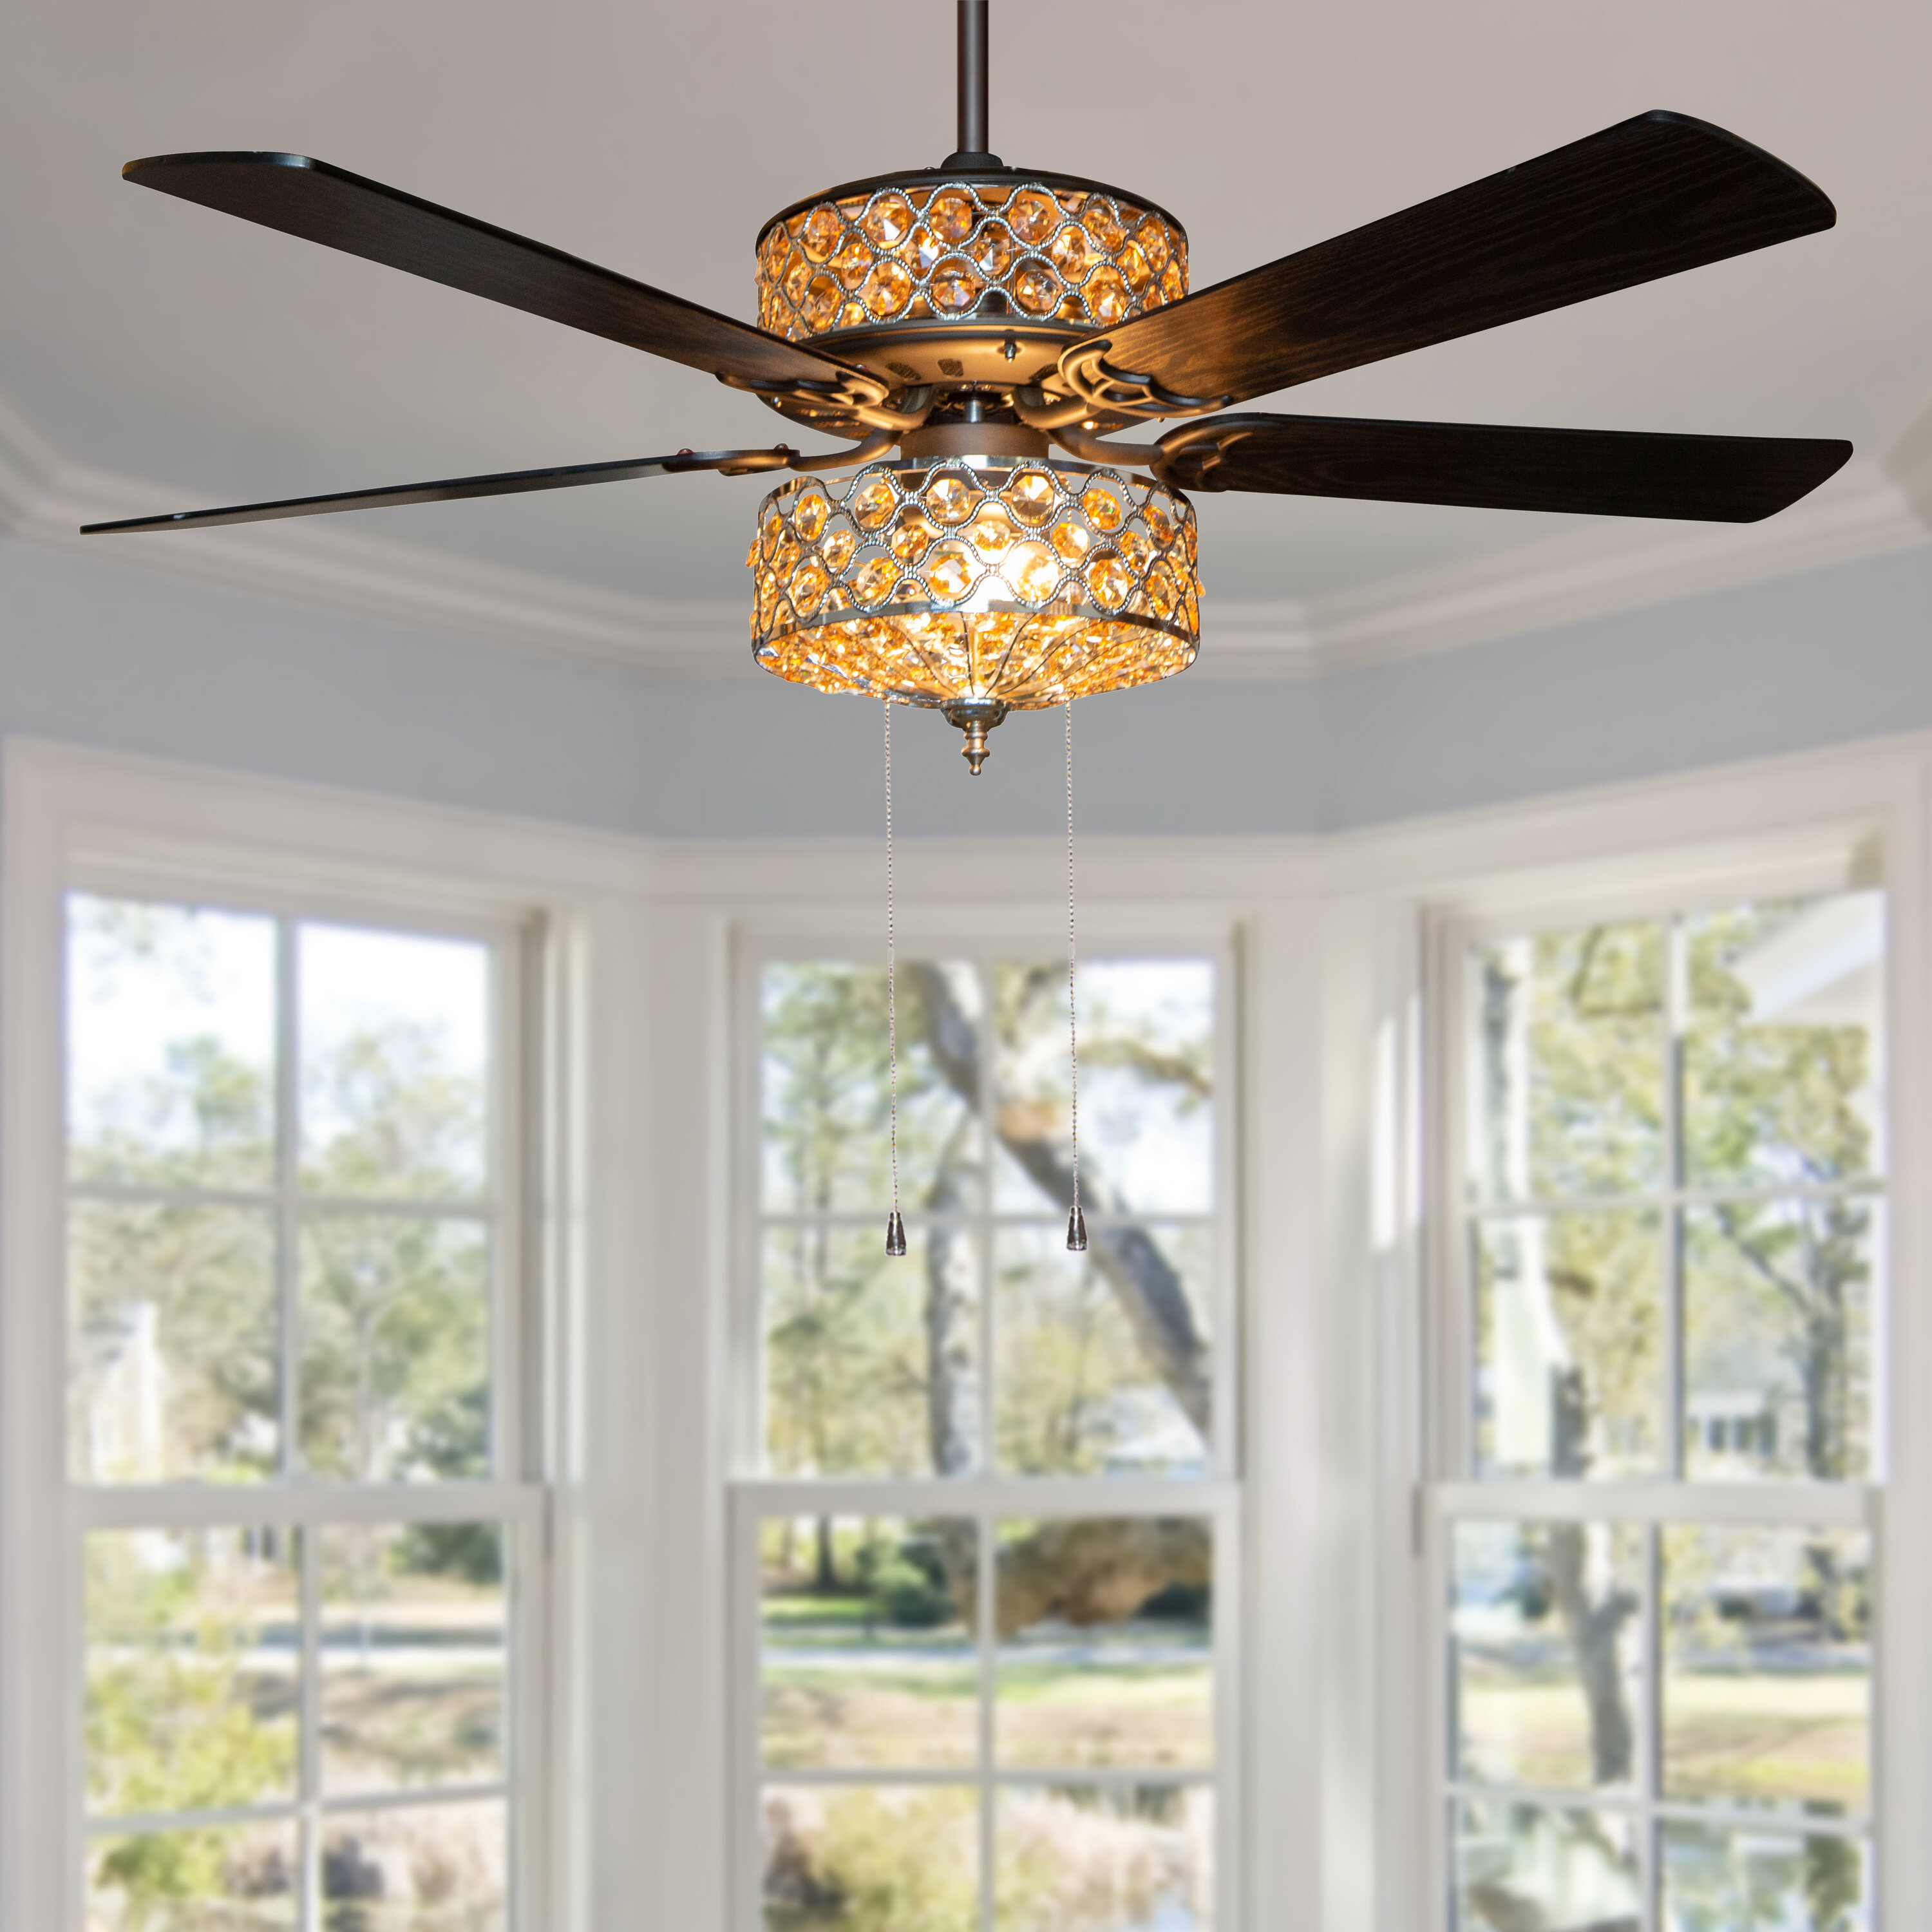 House Of Hampton 52 Irven 5 Blade Crystal Ceiling Fan With Pull Chain And Light Kit Included Reviews Wayfair